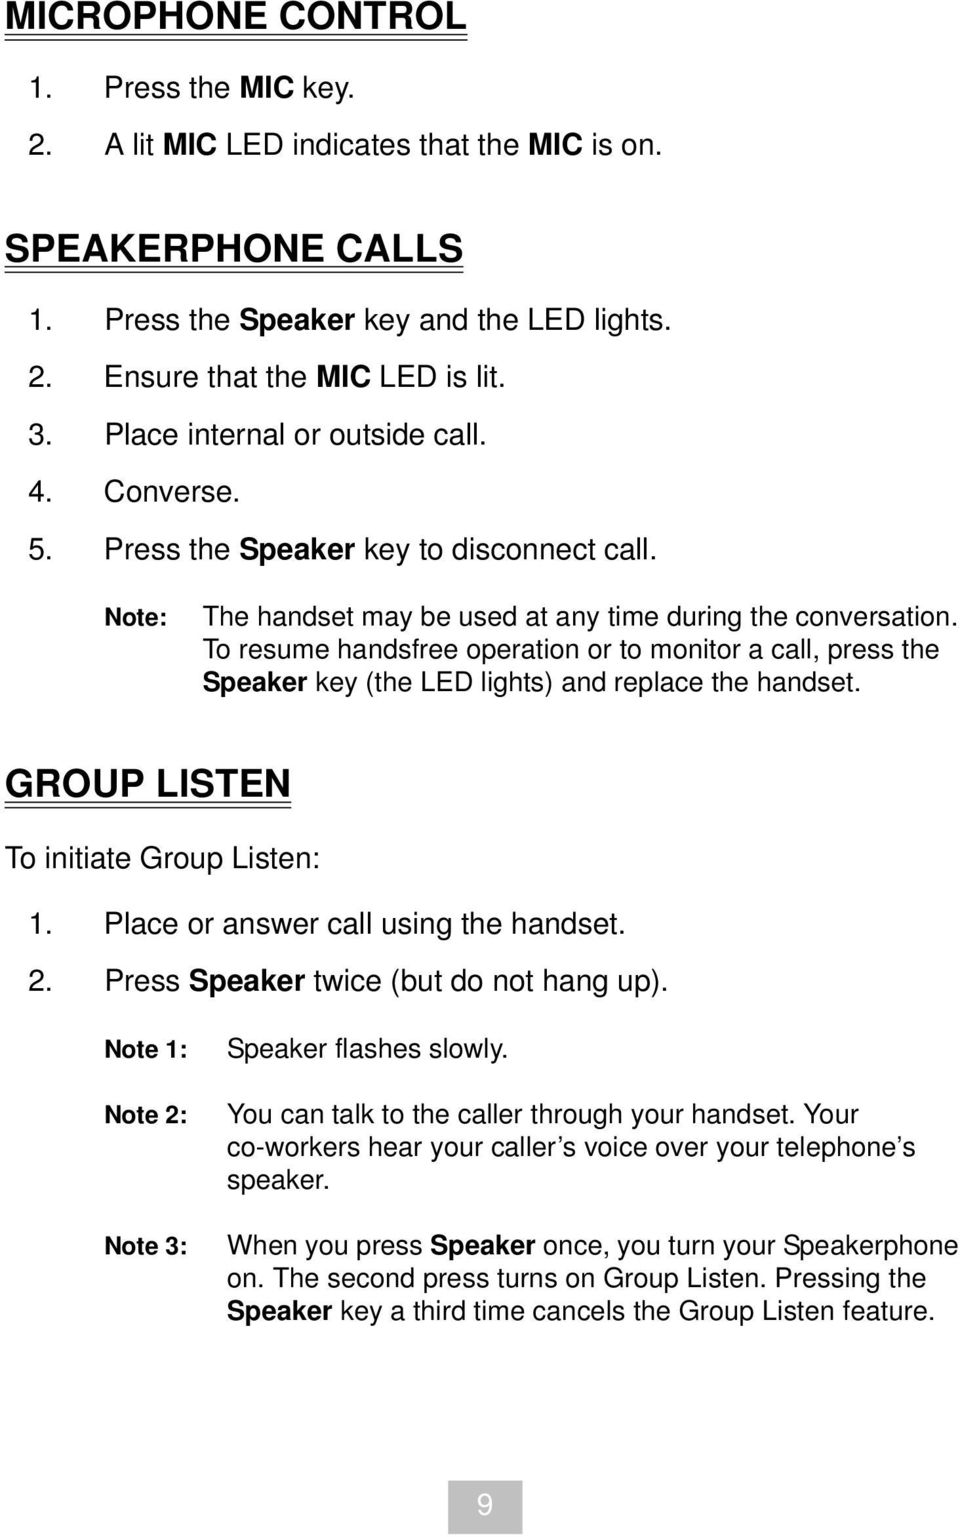 To resume handsfree operation or to monitor a call, press the Speaker key (the LED lights) and replace the handset. GROUP LISTEN To initiate Group Listen: 1. Place or answer call using the handset. 2.